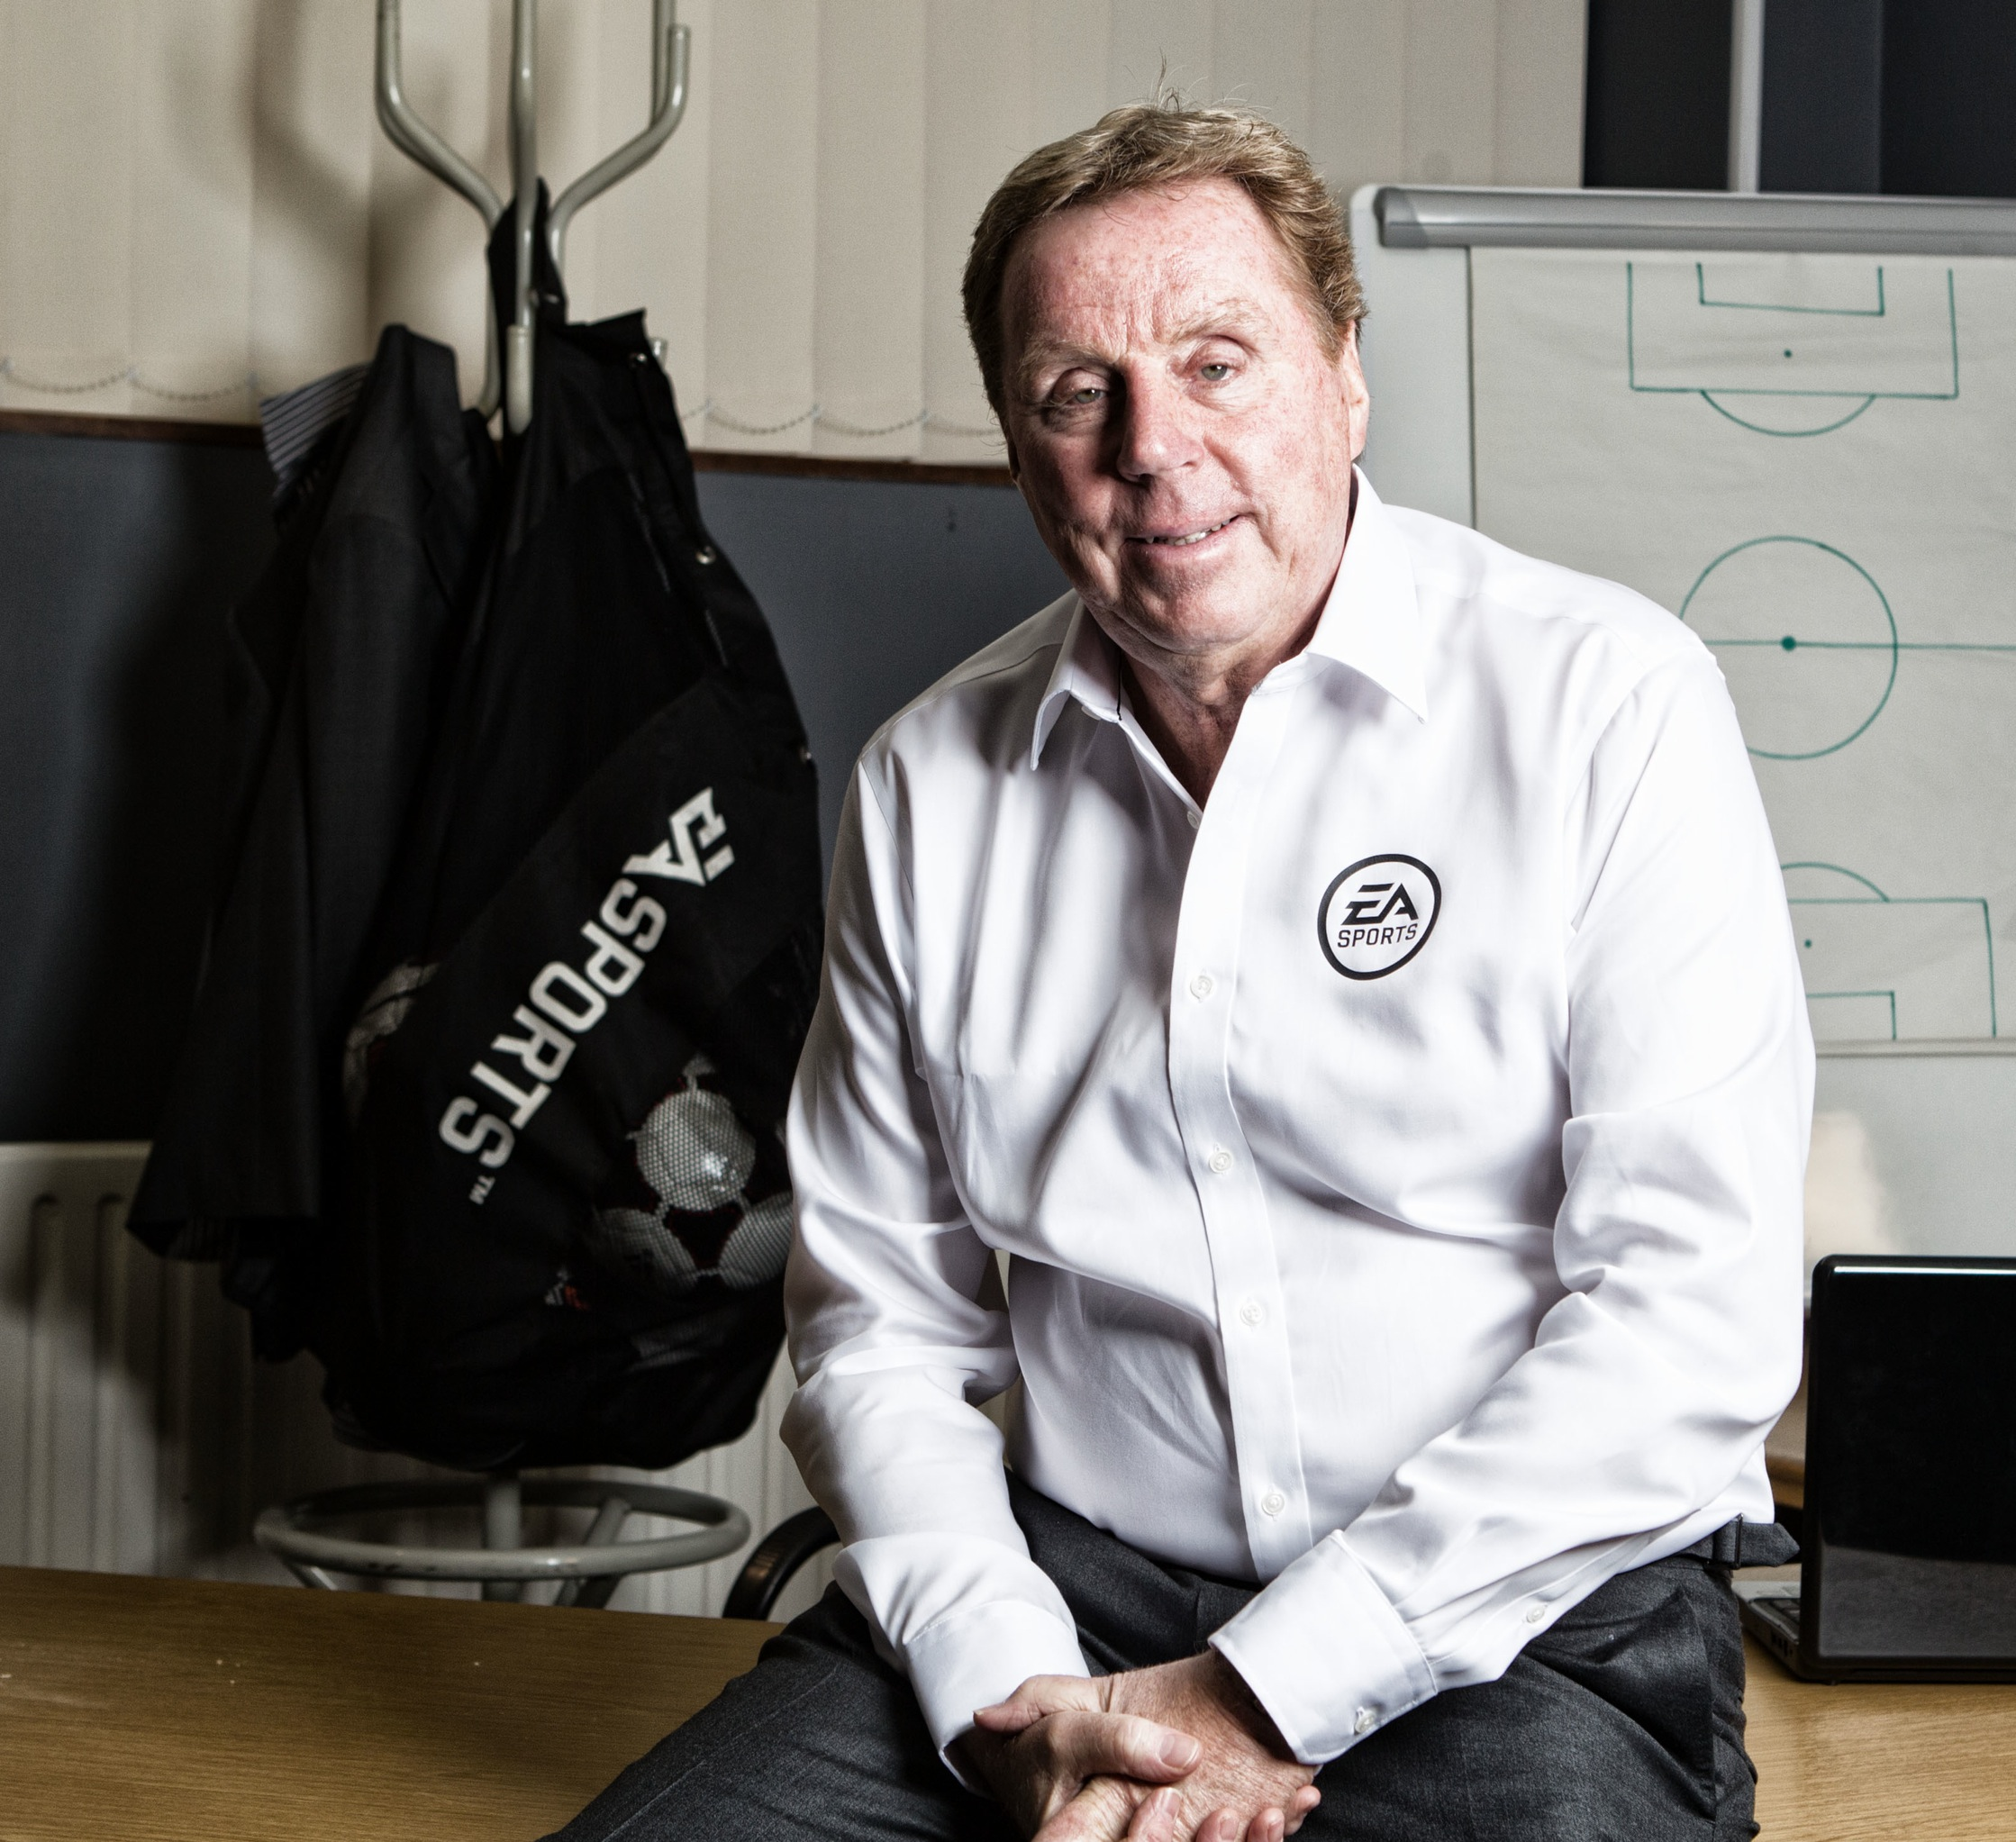 EA SPORTS_Harry Redknapp 8 cropped